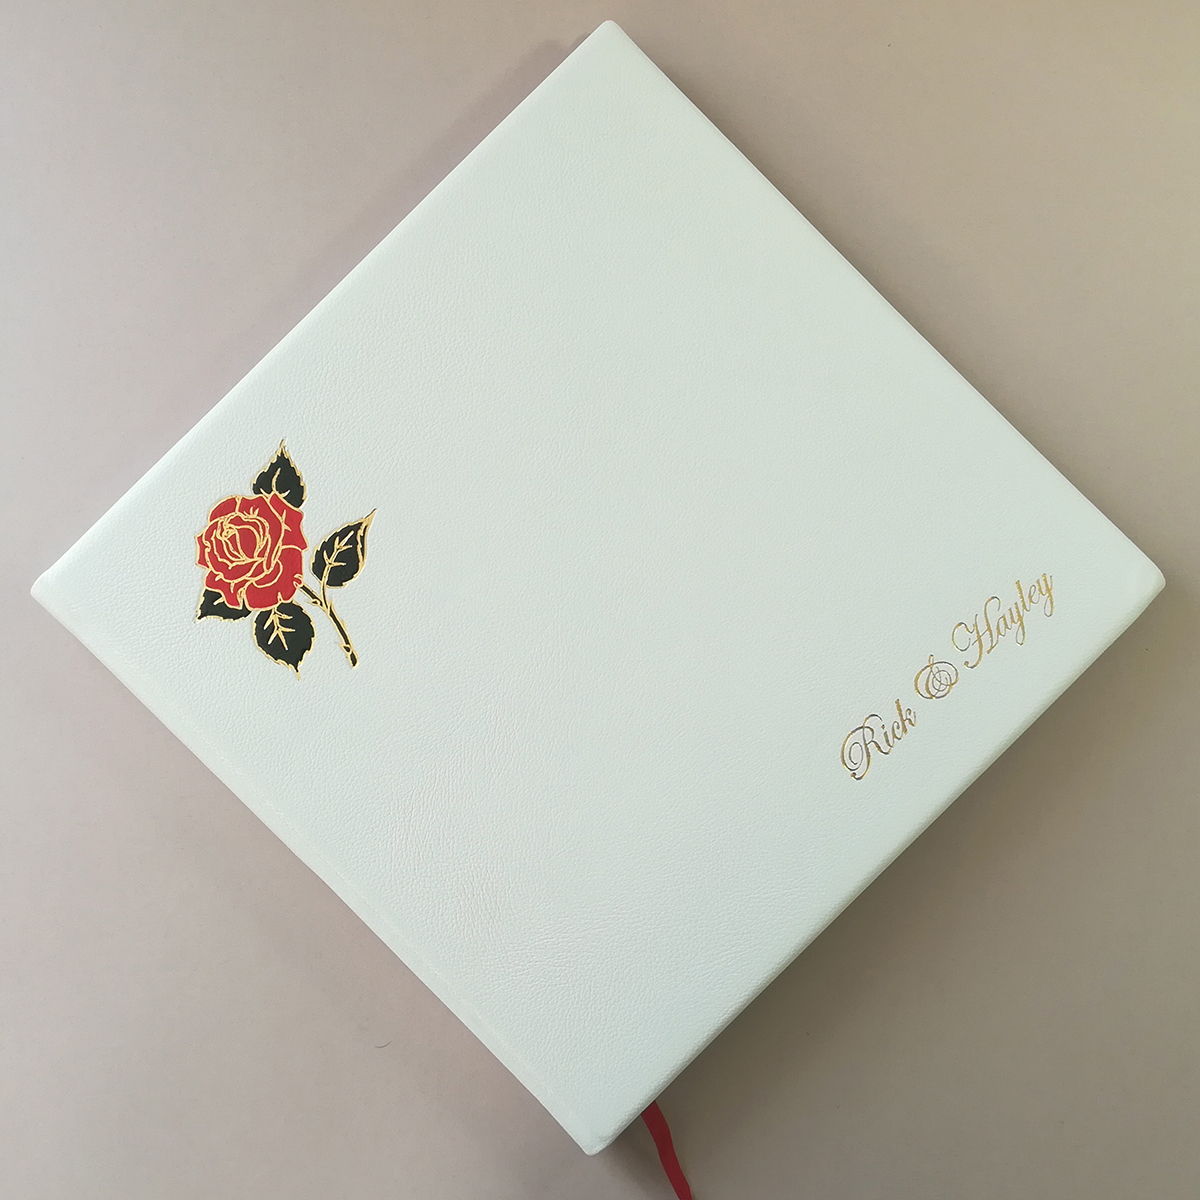 BESPOKE ALBUMS   We have been binding wedding albums for the last 98 years and have provided these for top high street stores and private individuals alike.